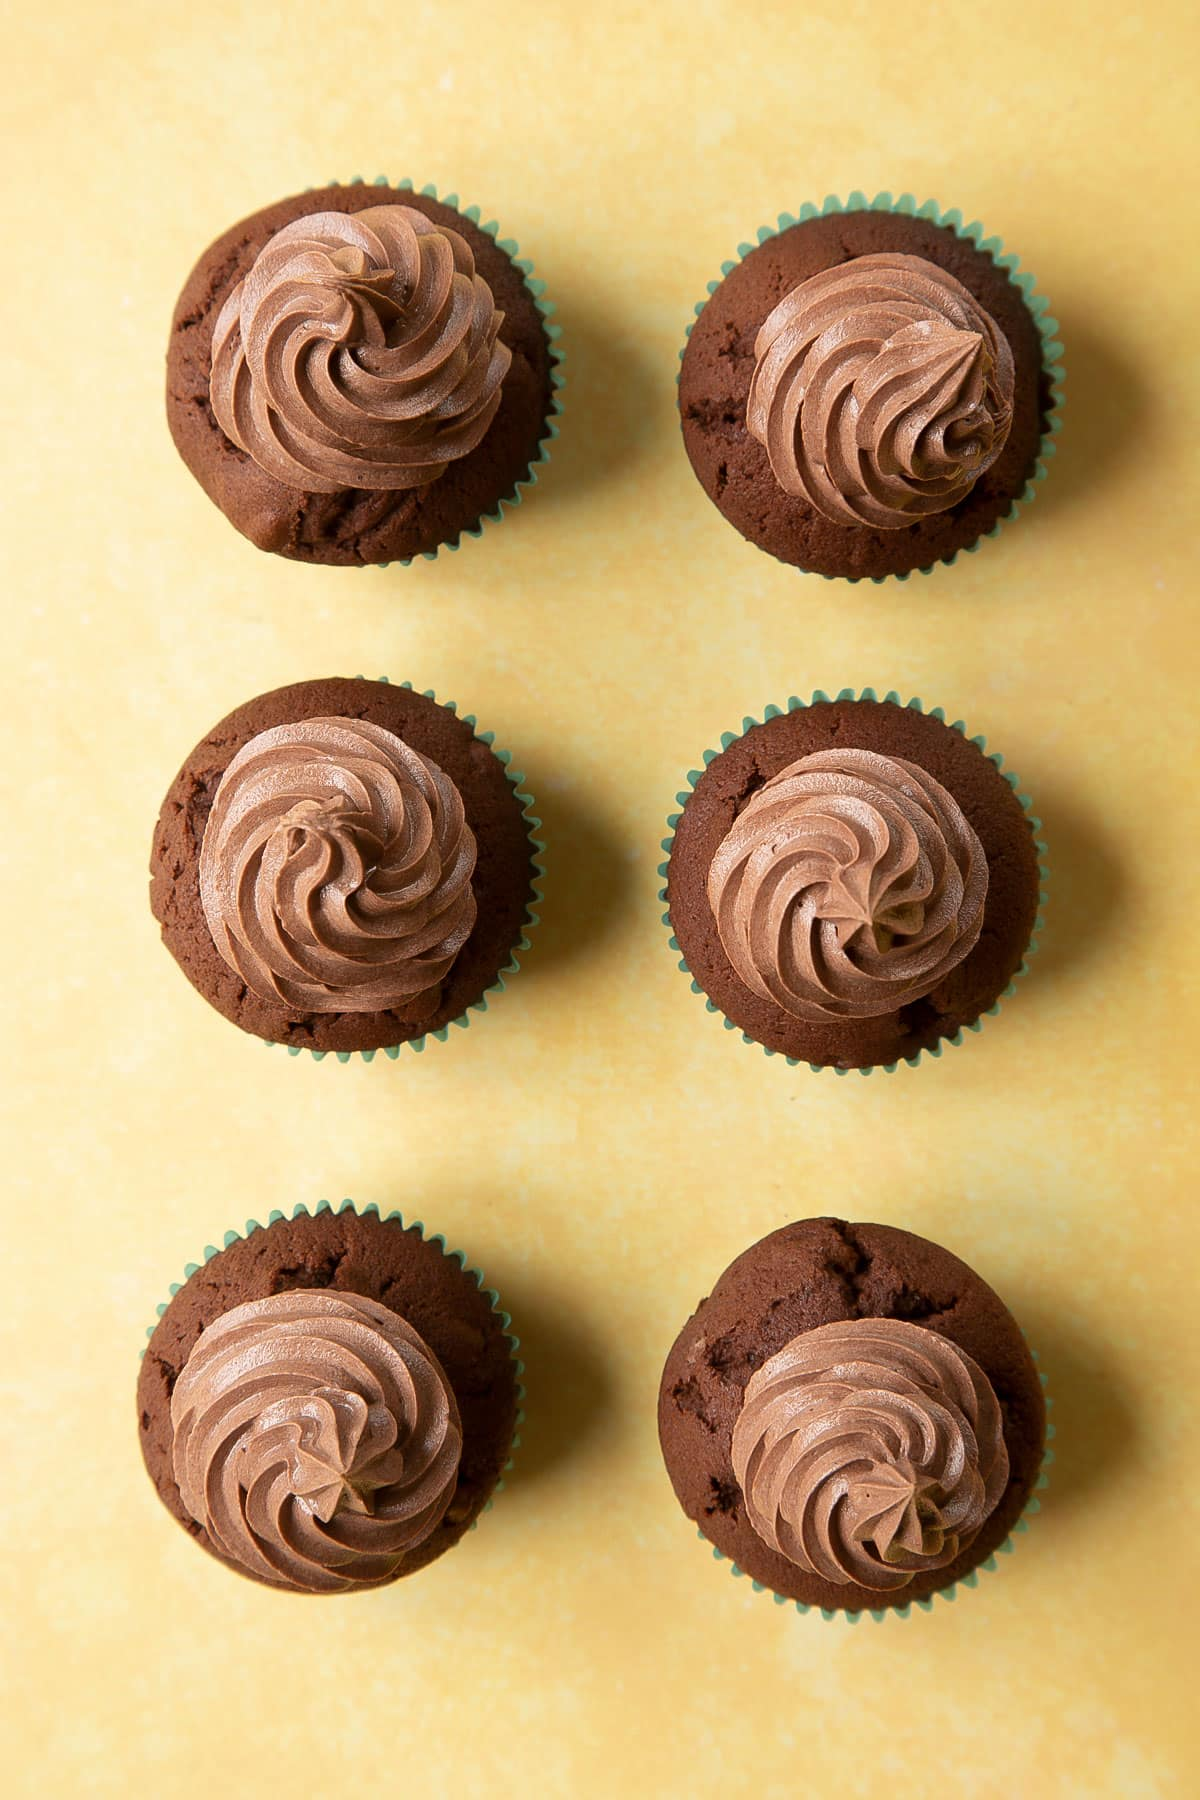 Chocolate walnut cupcakes with chocolate frosting piped on top in tall swirls.